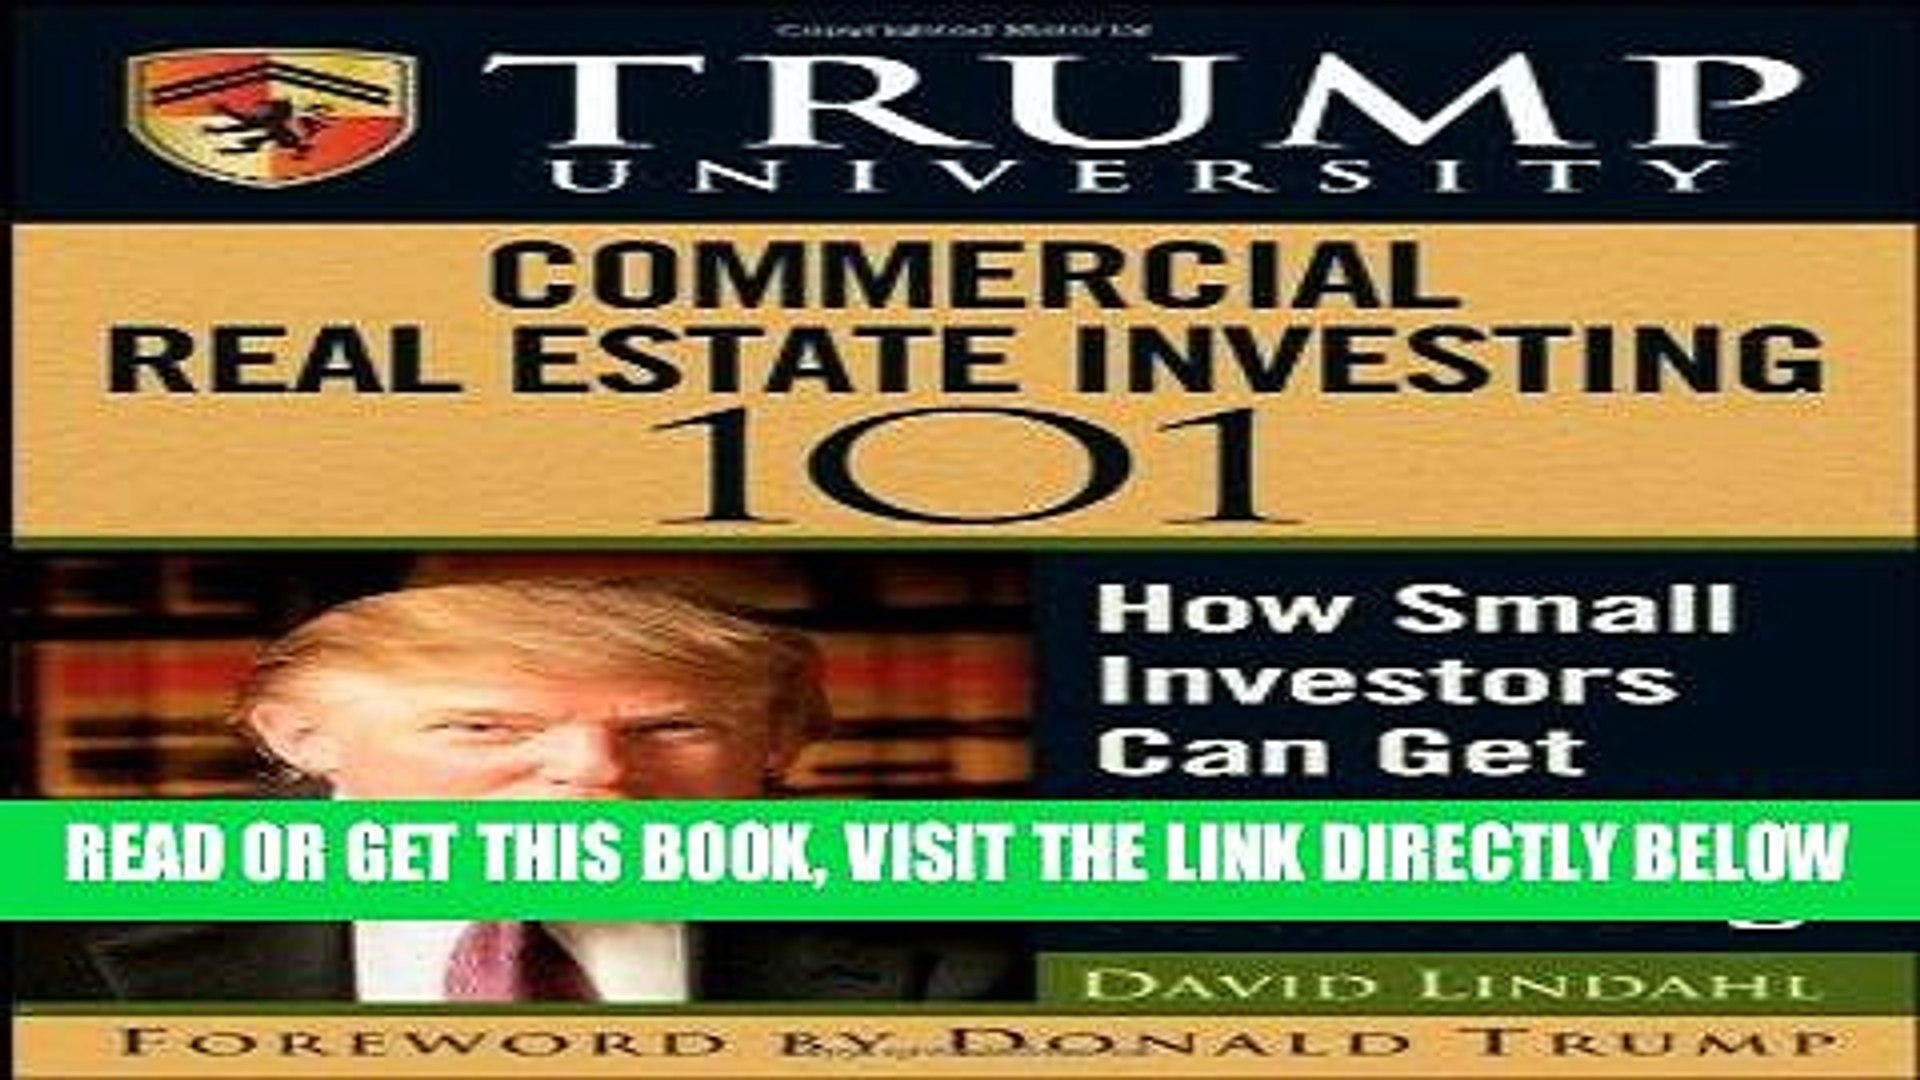 [Free Read] Trump University Commercial Real Estate 101: How Small Investors Can Get Started and